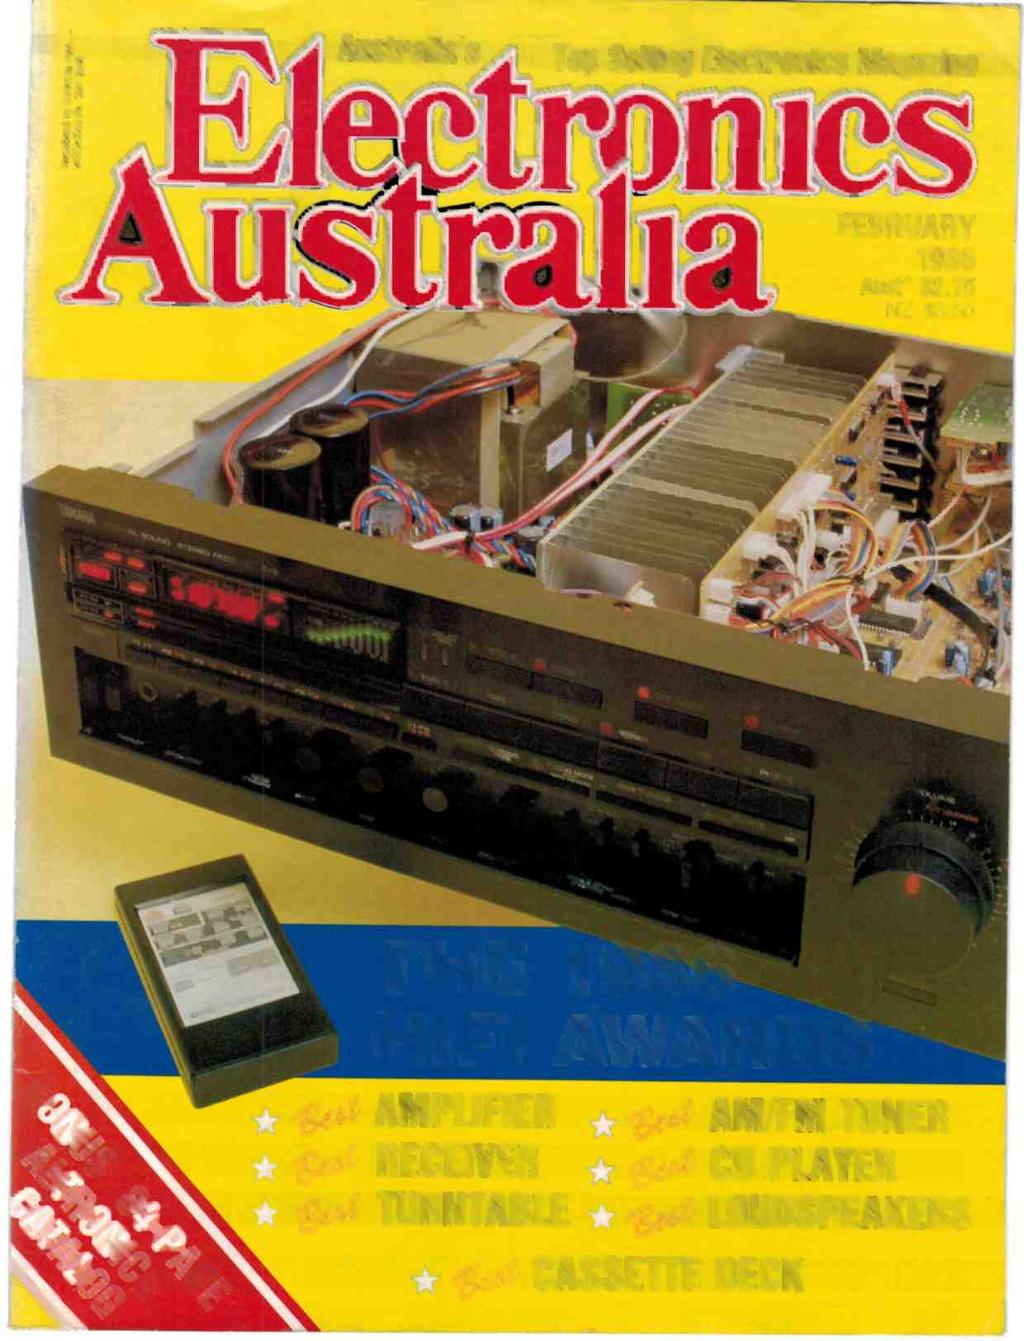 Hifi Awards 9at Amplifier The 1t Am Fm Tuner 90 Cd Player Lehit 70w Australias Top Selling Electronics Magazine I